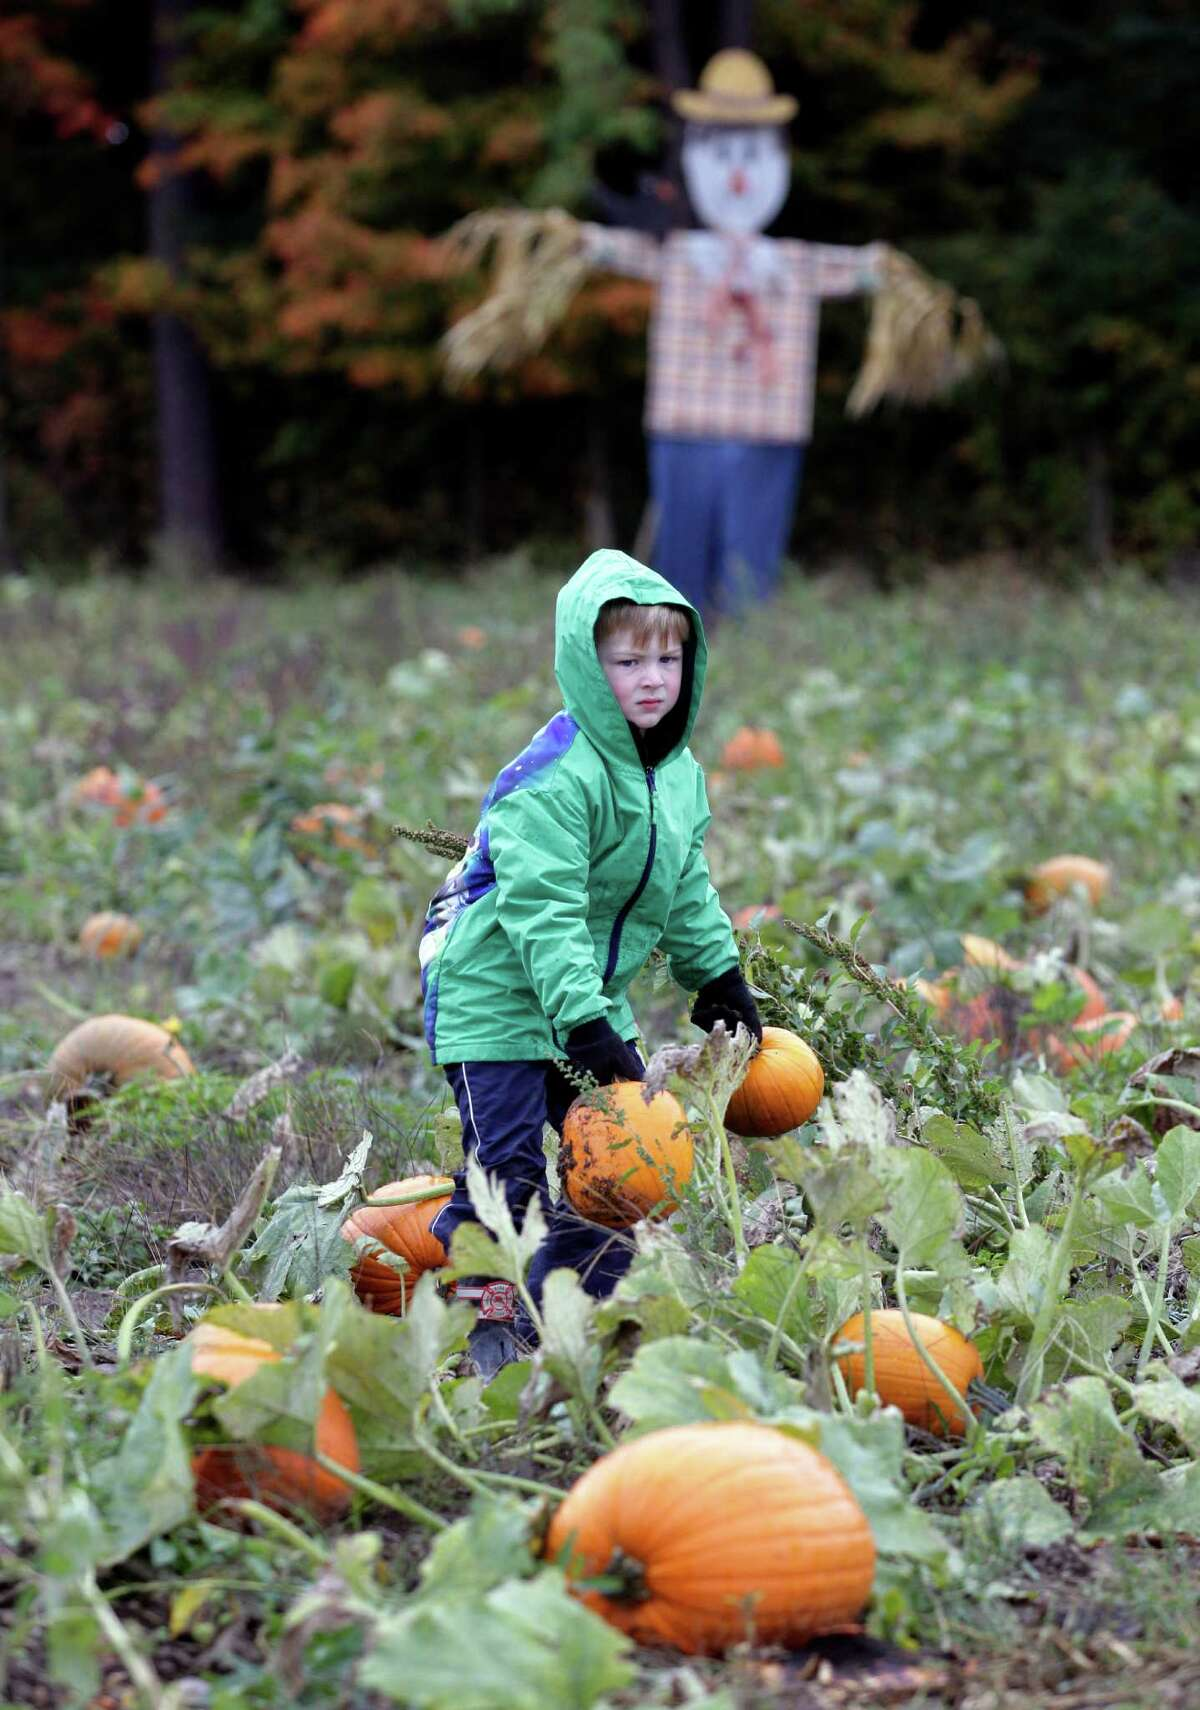 Kiernan Lembke picks out two pumpkins for Halloween at Kelkenberg Farm in Akron, N.Y., Monday, Oct. 8, 2012. While many crops withered after a late spring frost and a dry summer, farmers say their pumpkins have thrived in the drier weather this year.